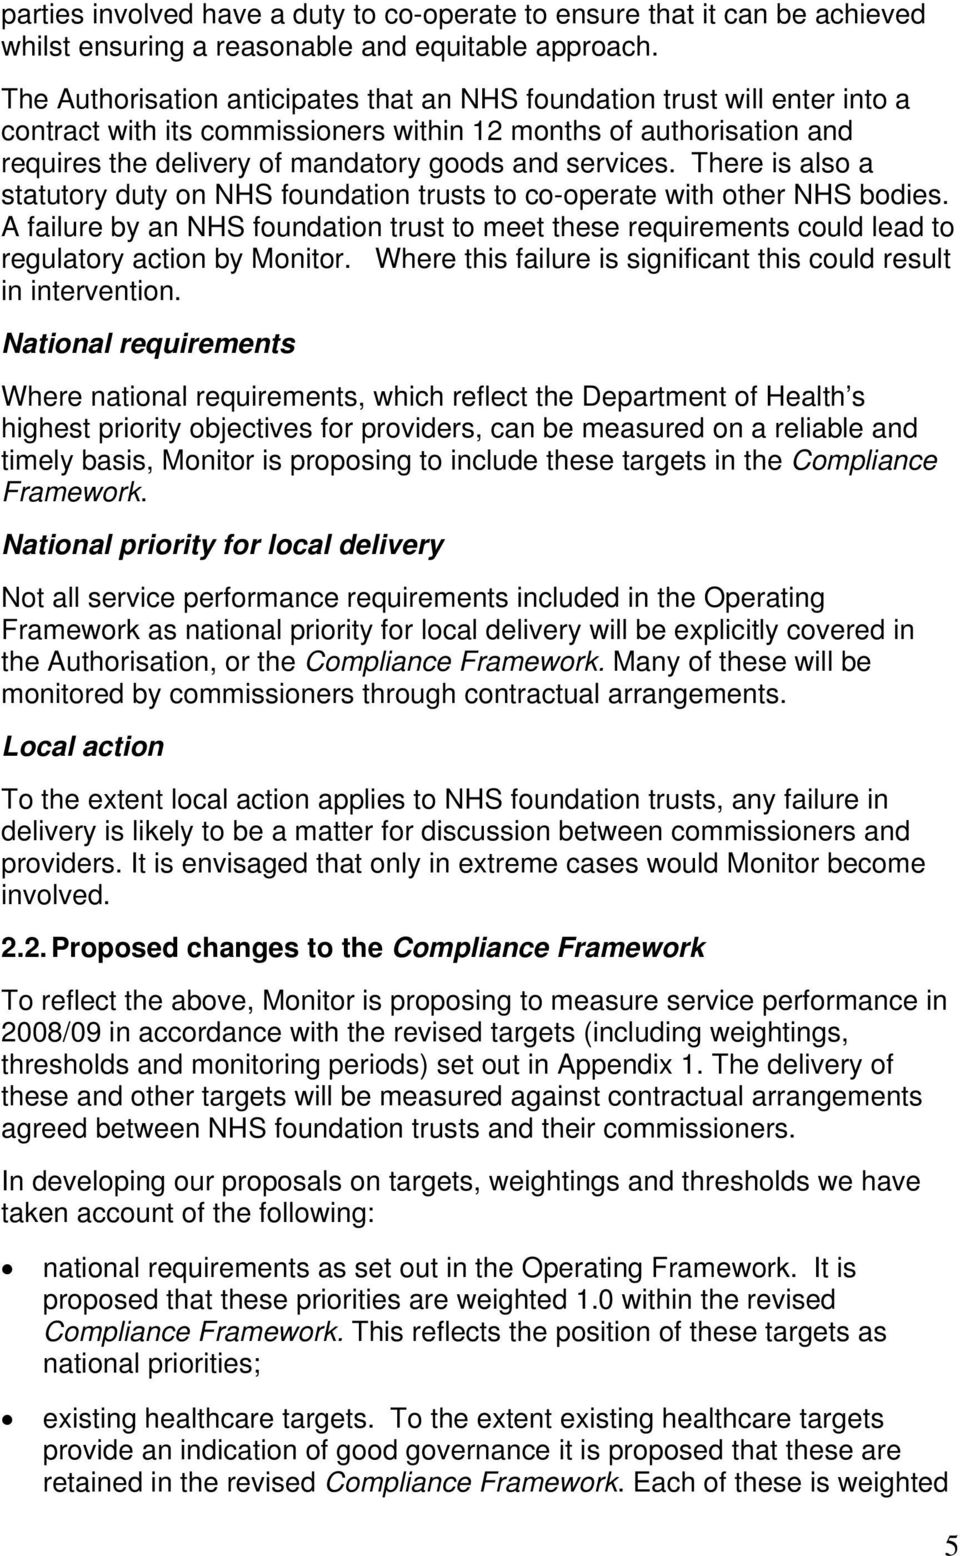 services. There is also a statutory duty on NHS foundation trusts to co-operate with other NHS bodies.